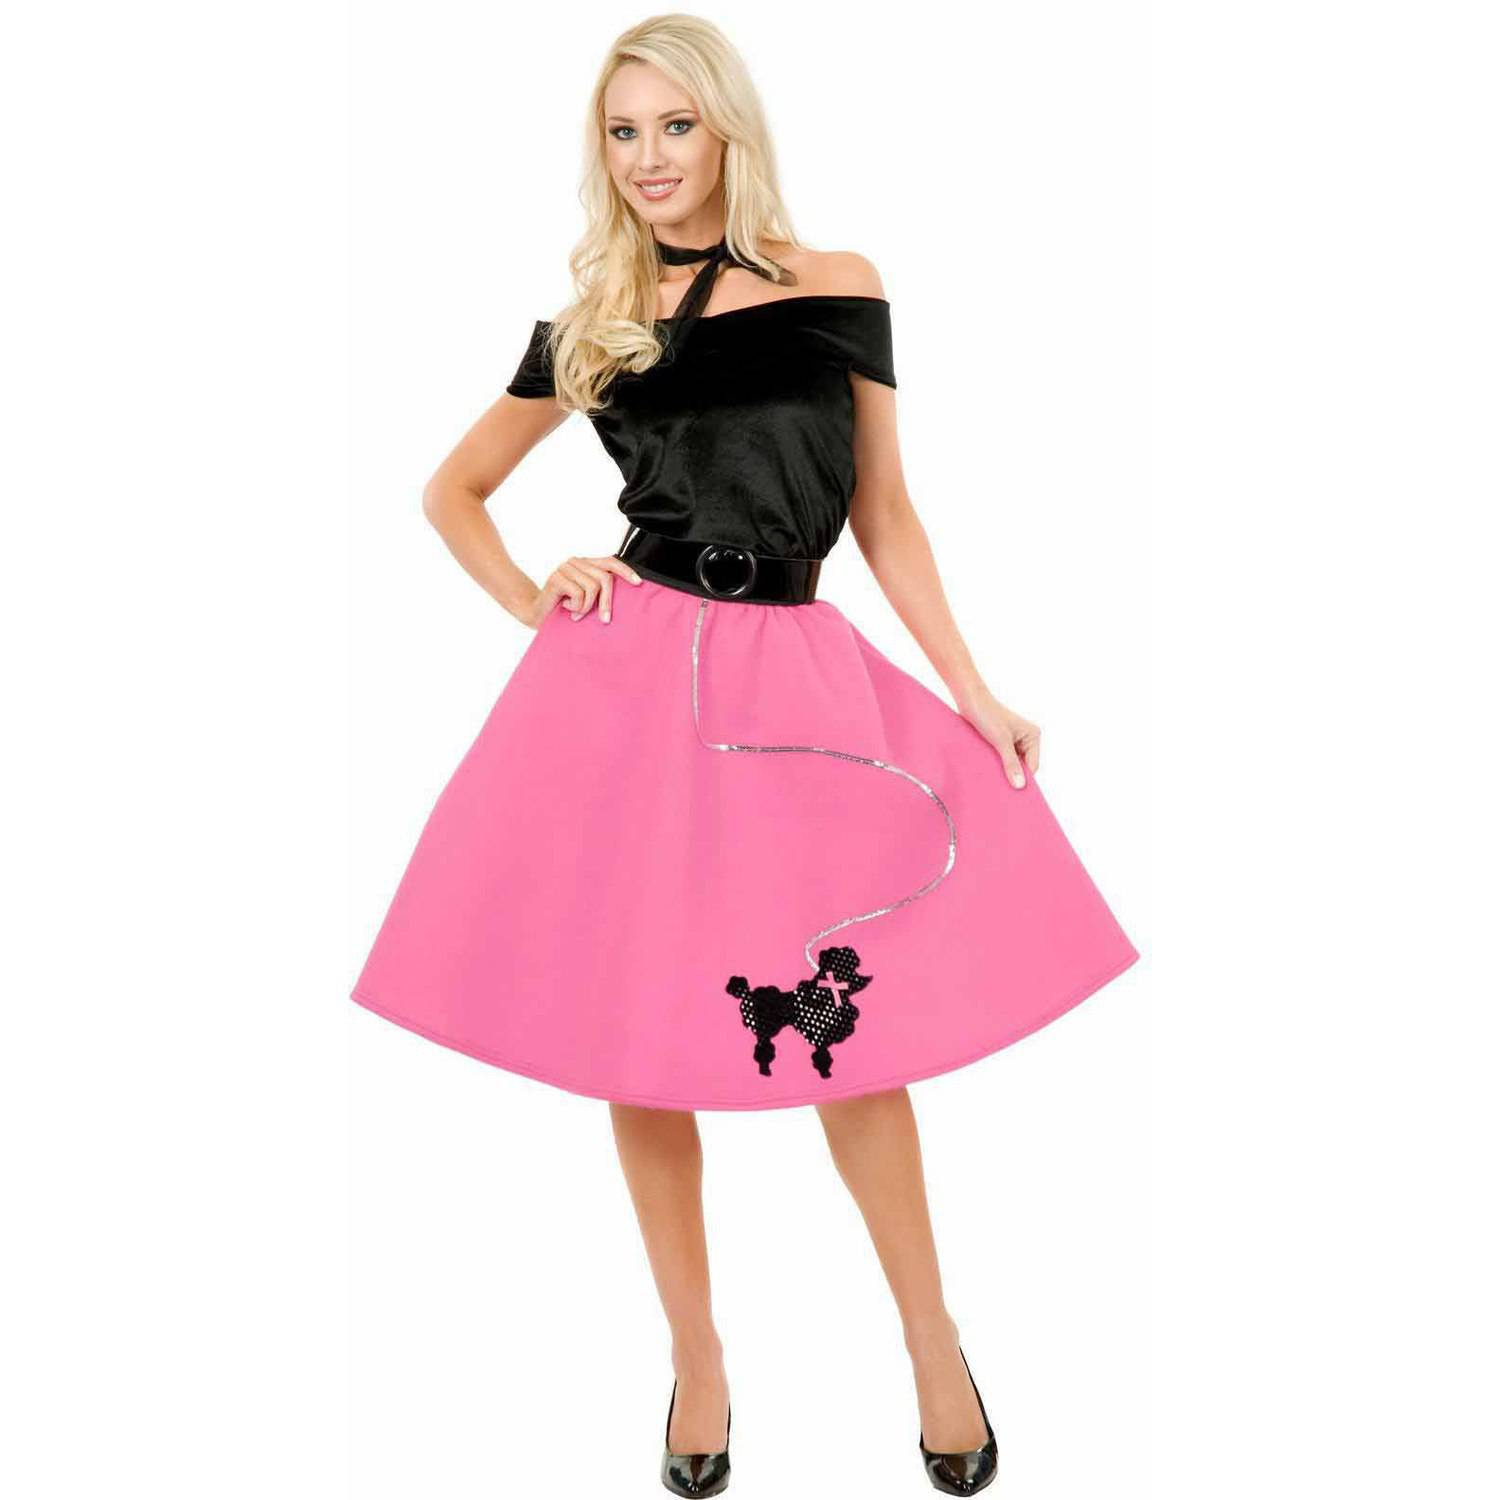 Pink Poodle Skirt Plus Size Women's Adult Halloween Costume